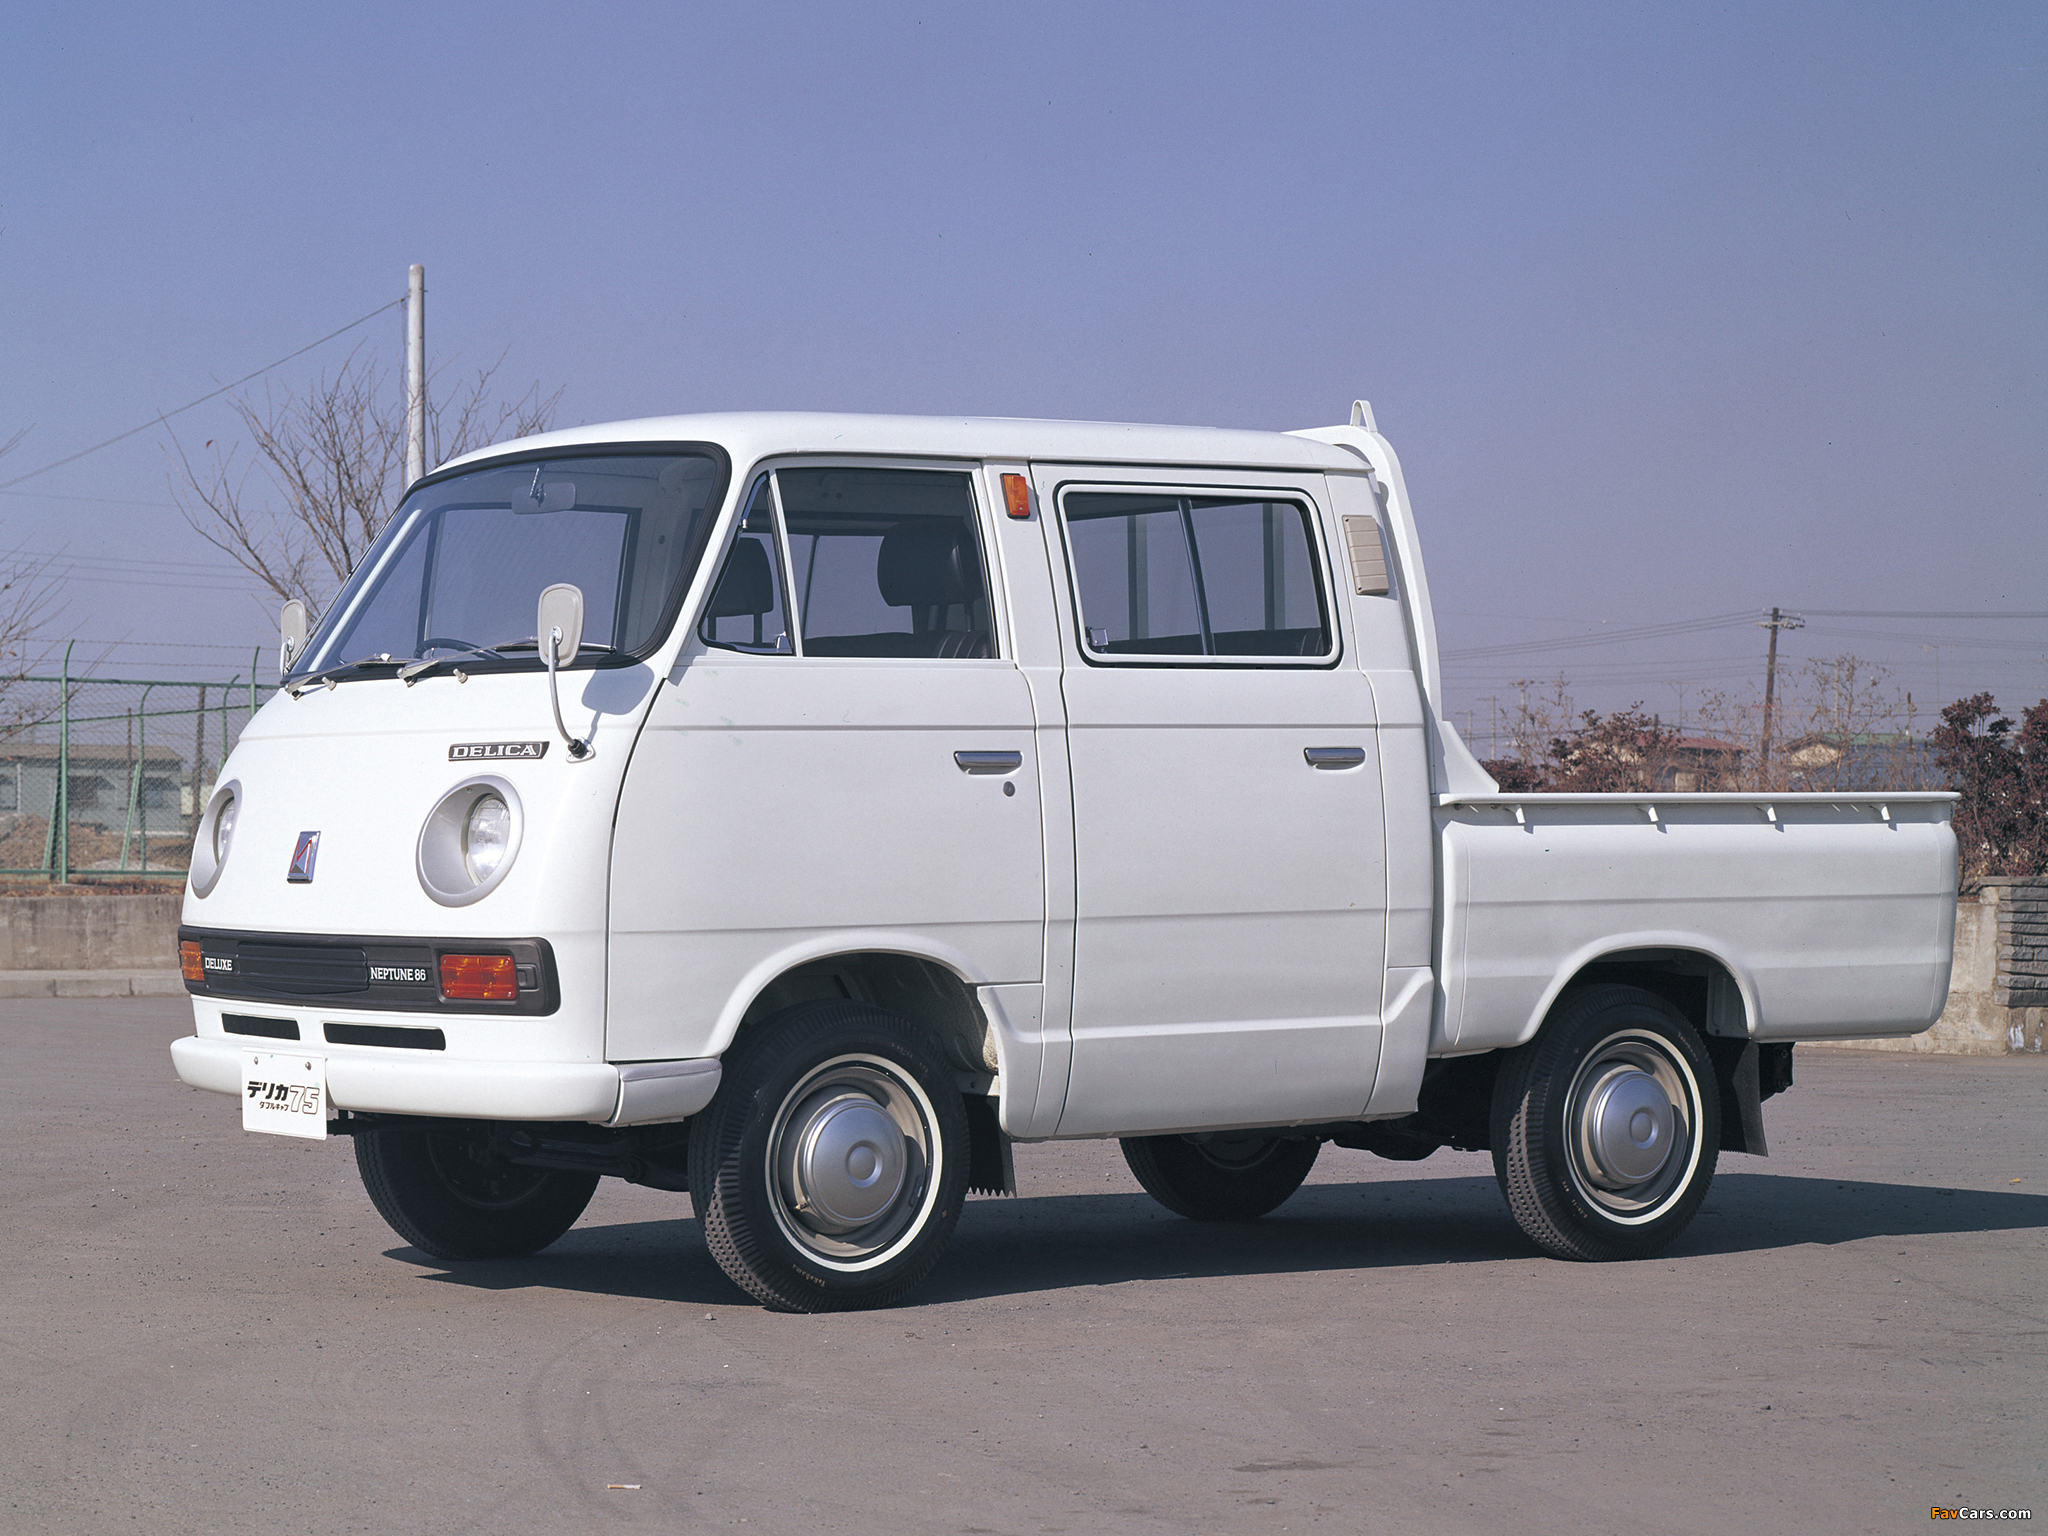 Mitsubishi did do such: the Delica Pickup Double Cab from the 1970s.